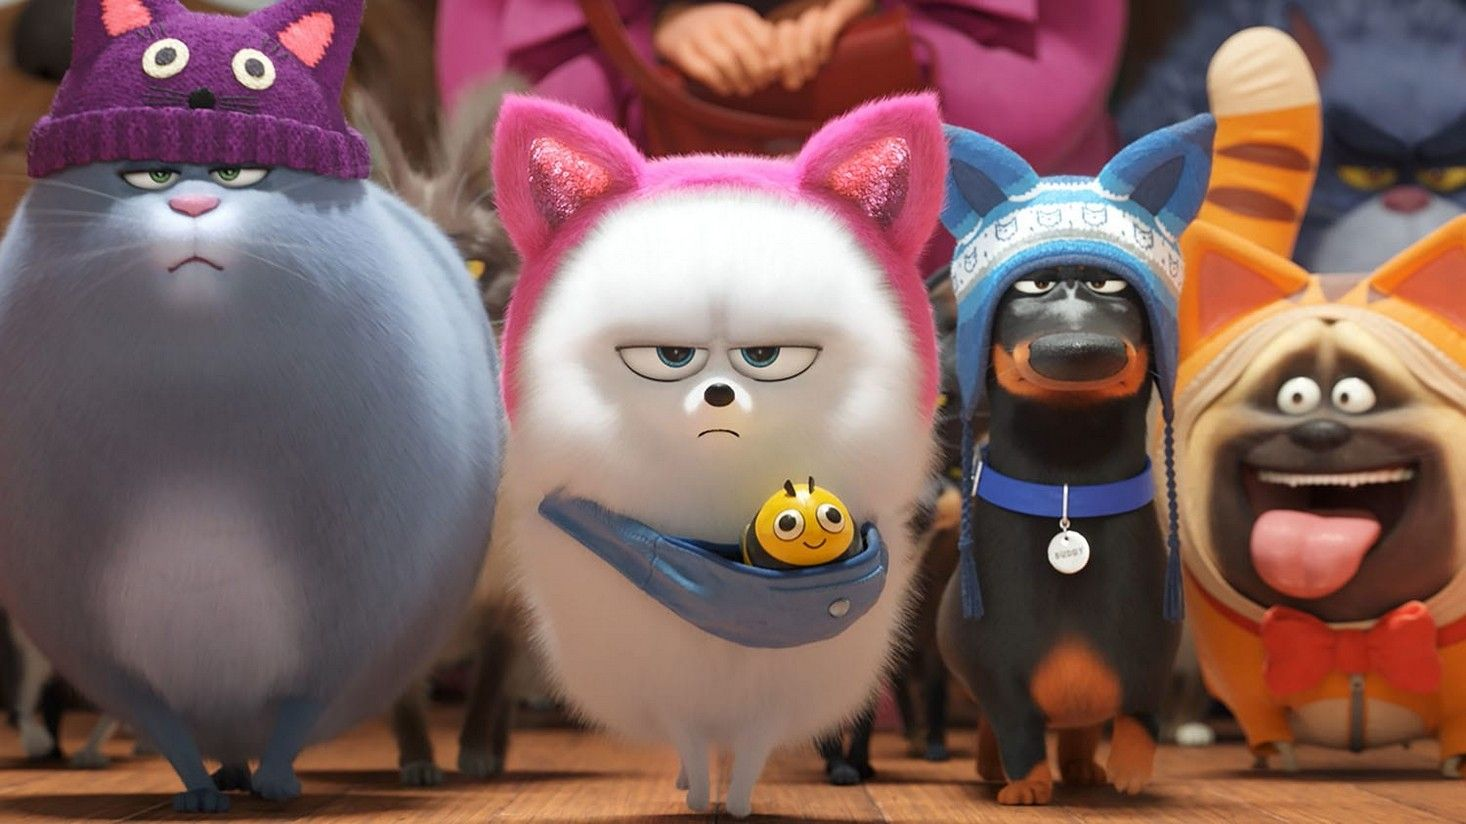 Ver Película Mascotas 2 Audio Latino Online Secret Life Of Pets Pets Secret Life